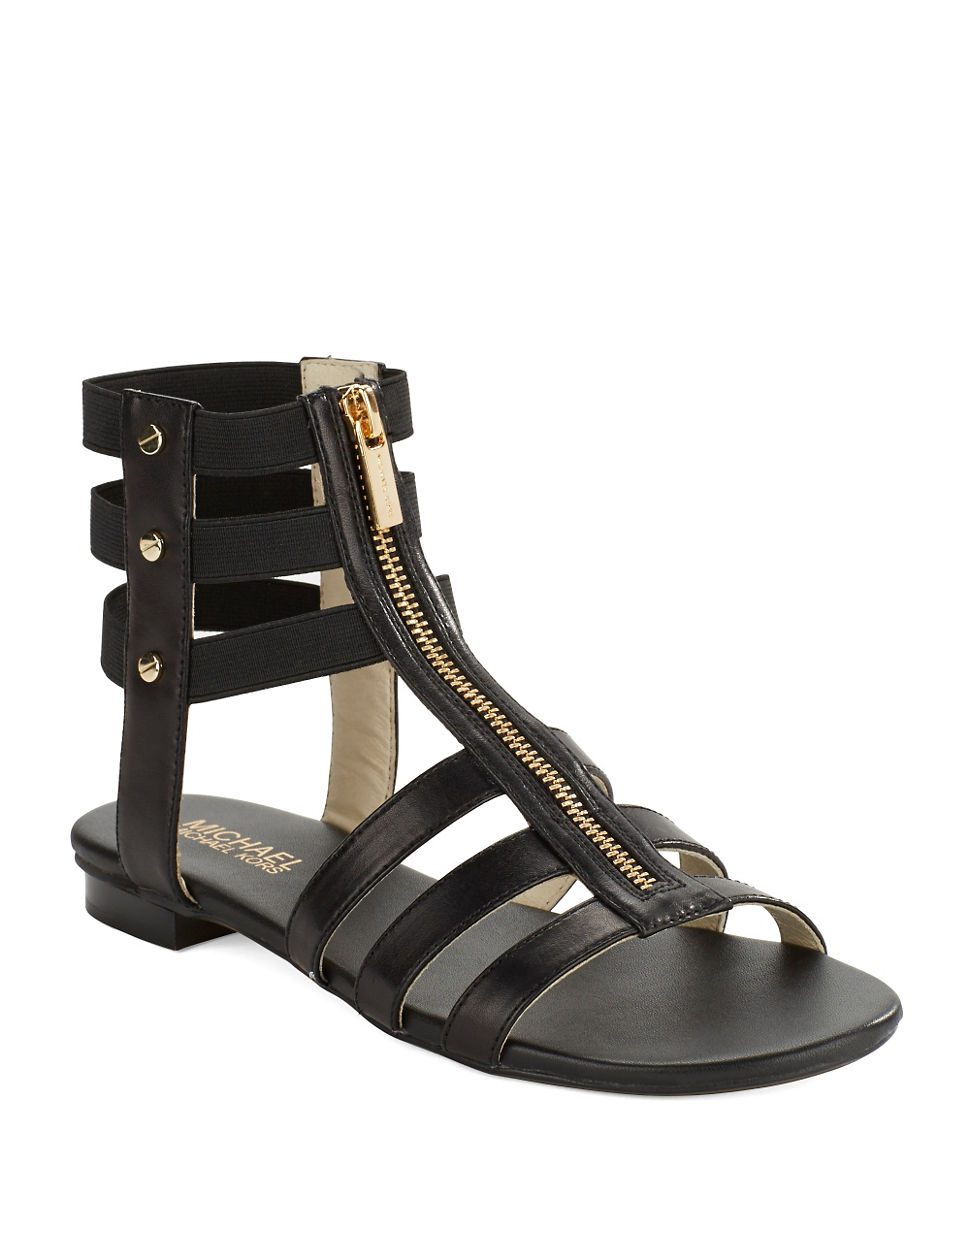 d63e96bd5bbd Michael Michael Kors Codie Leather Gladiator Sandals in Black - Lyst